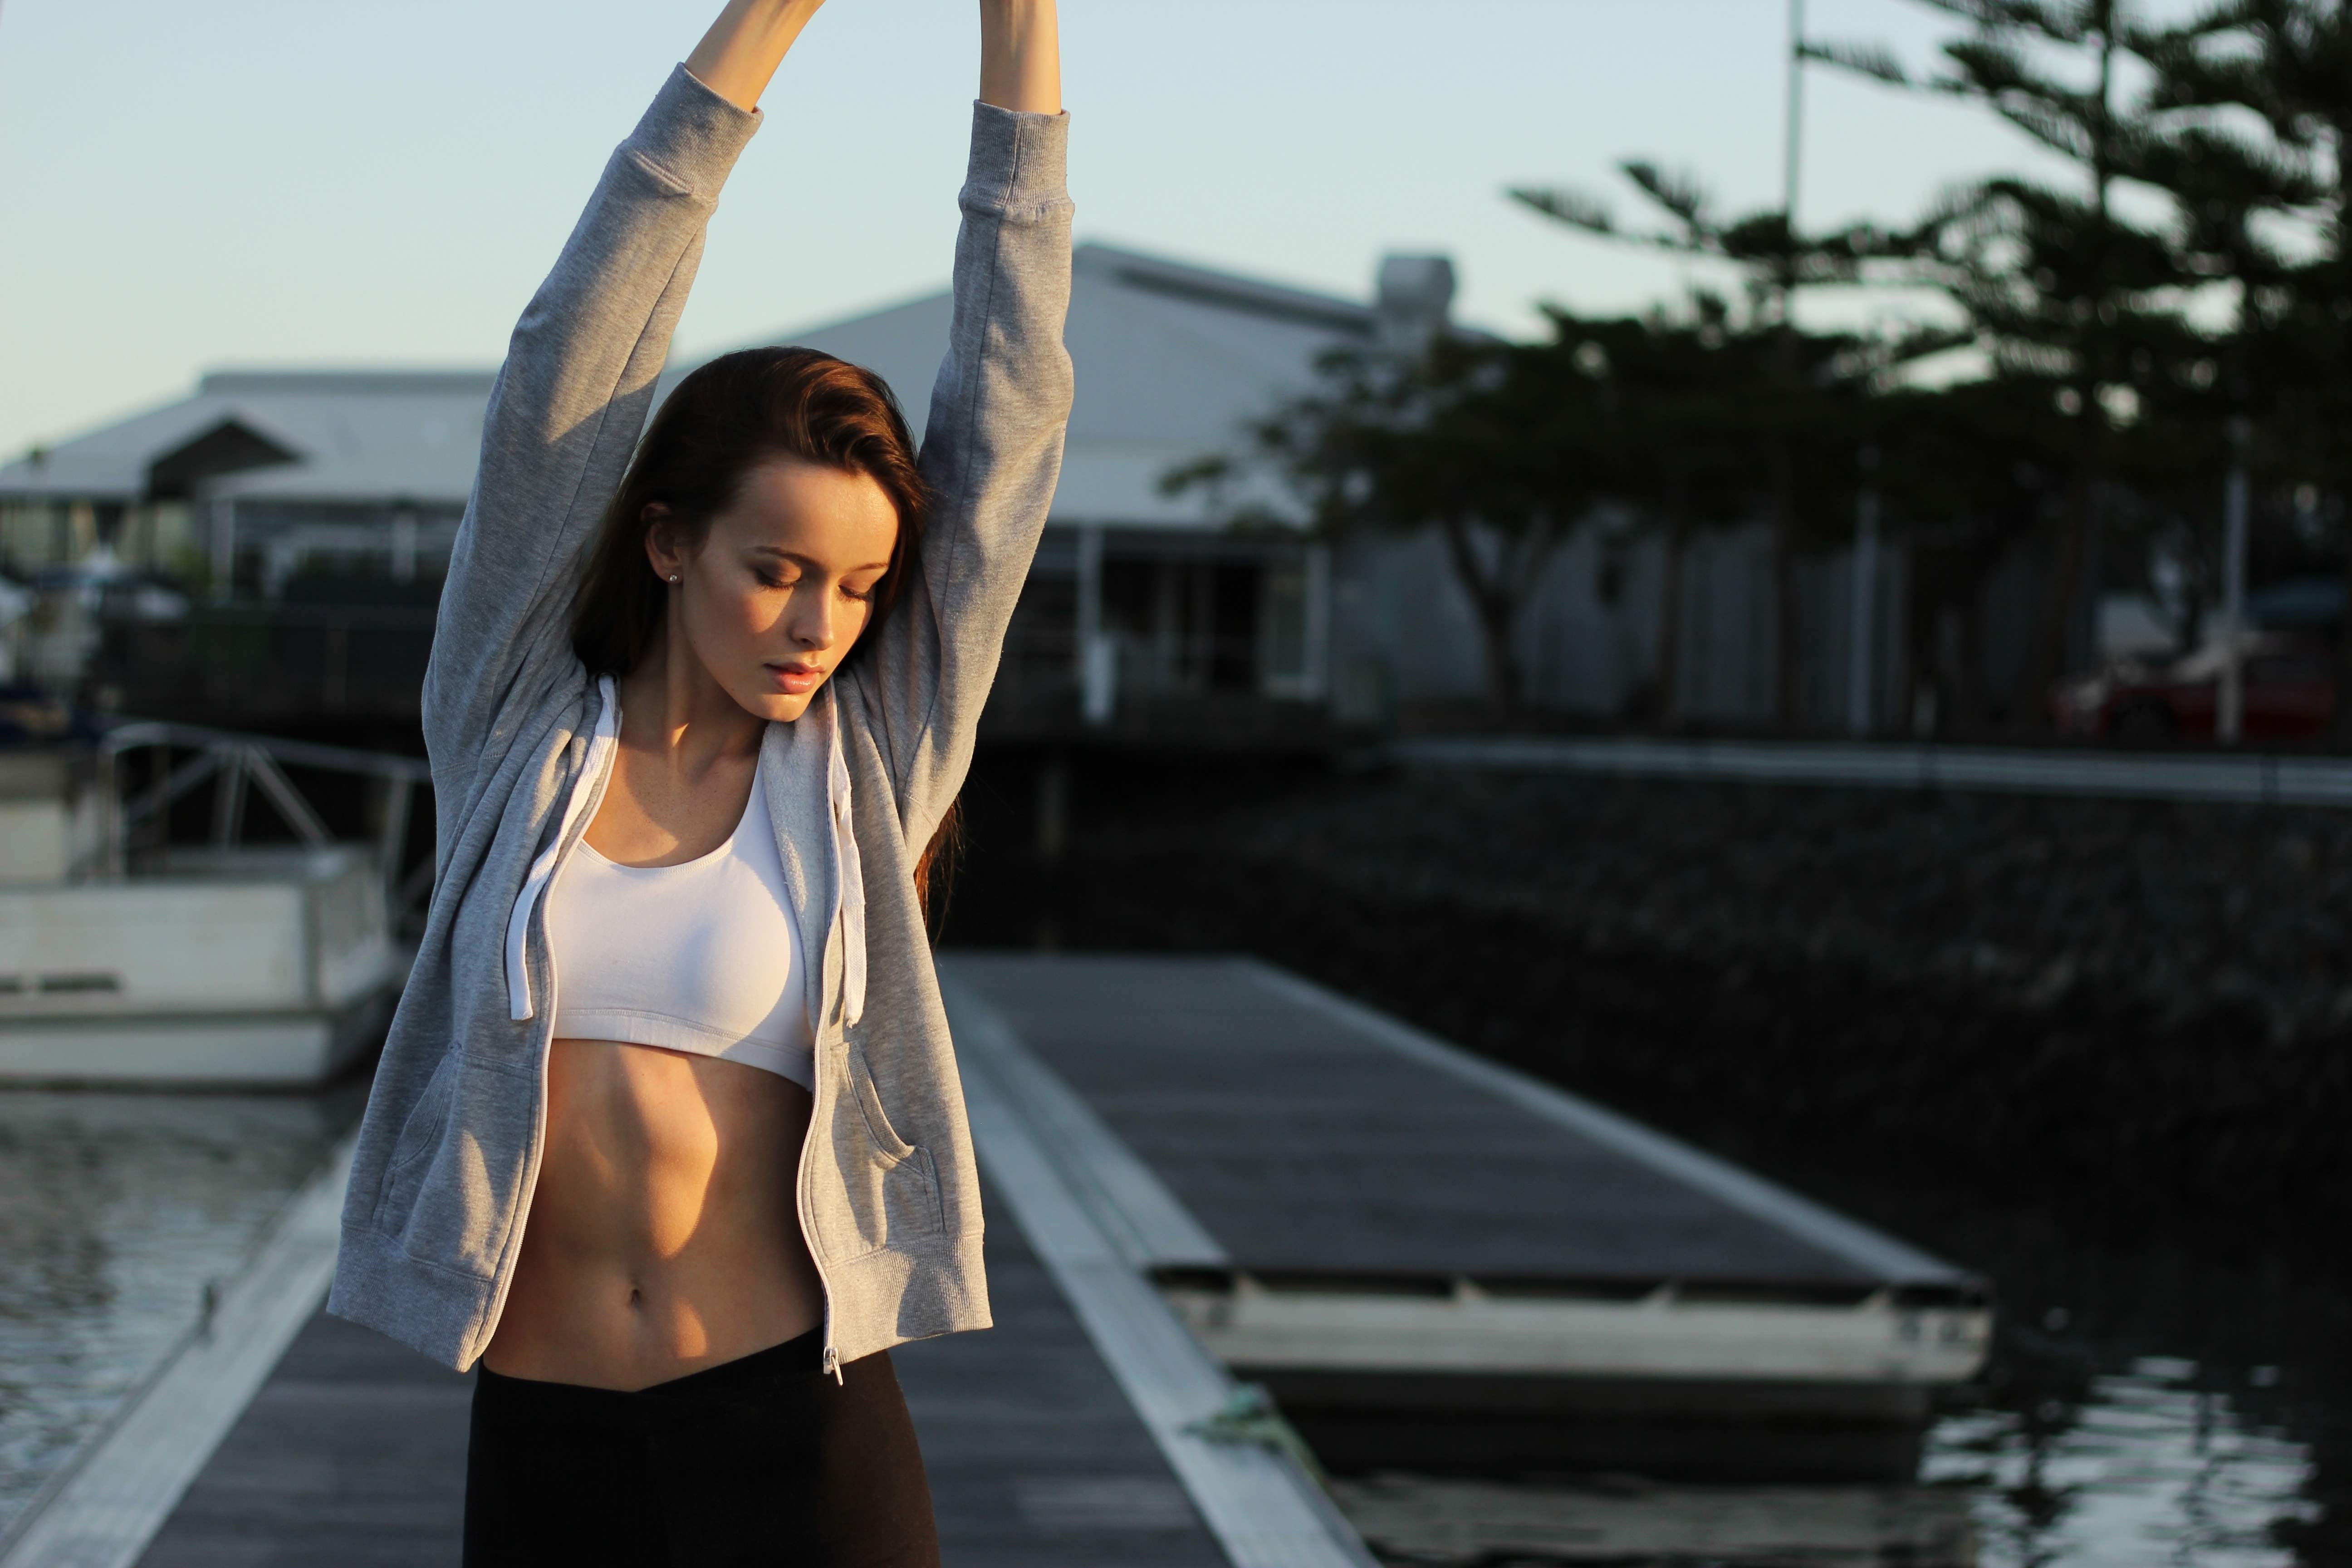 Exercise shapes and tones your body